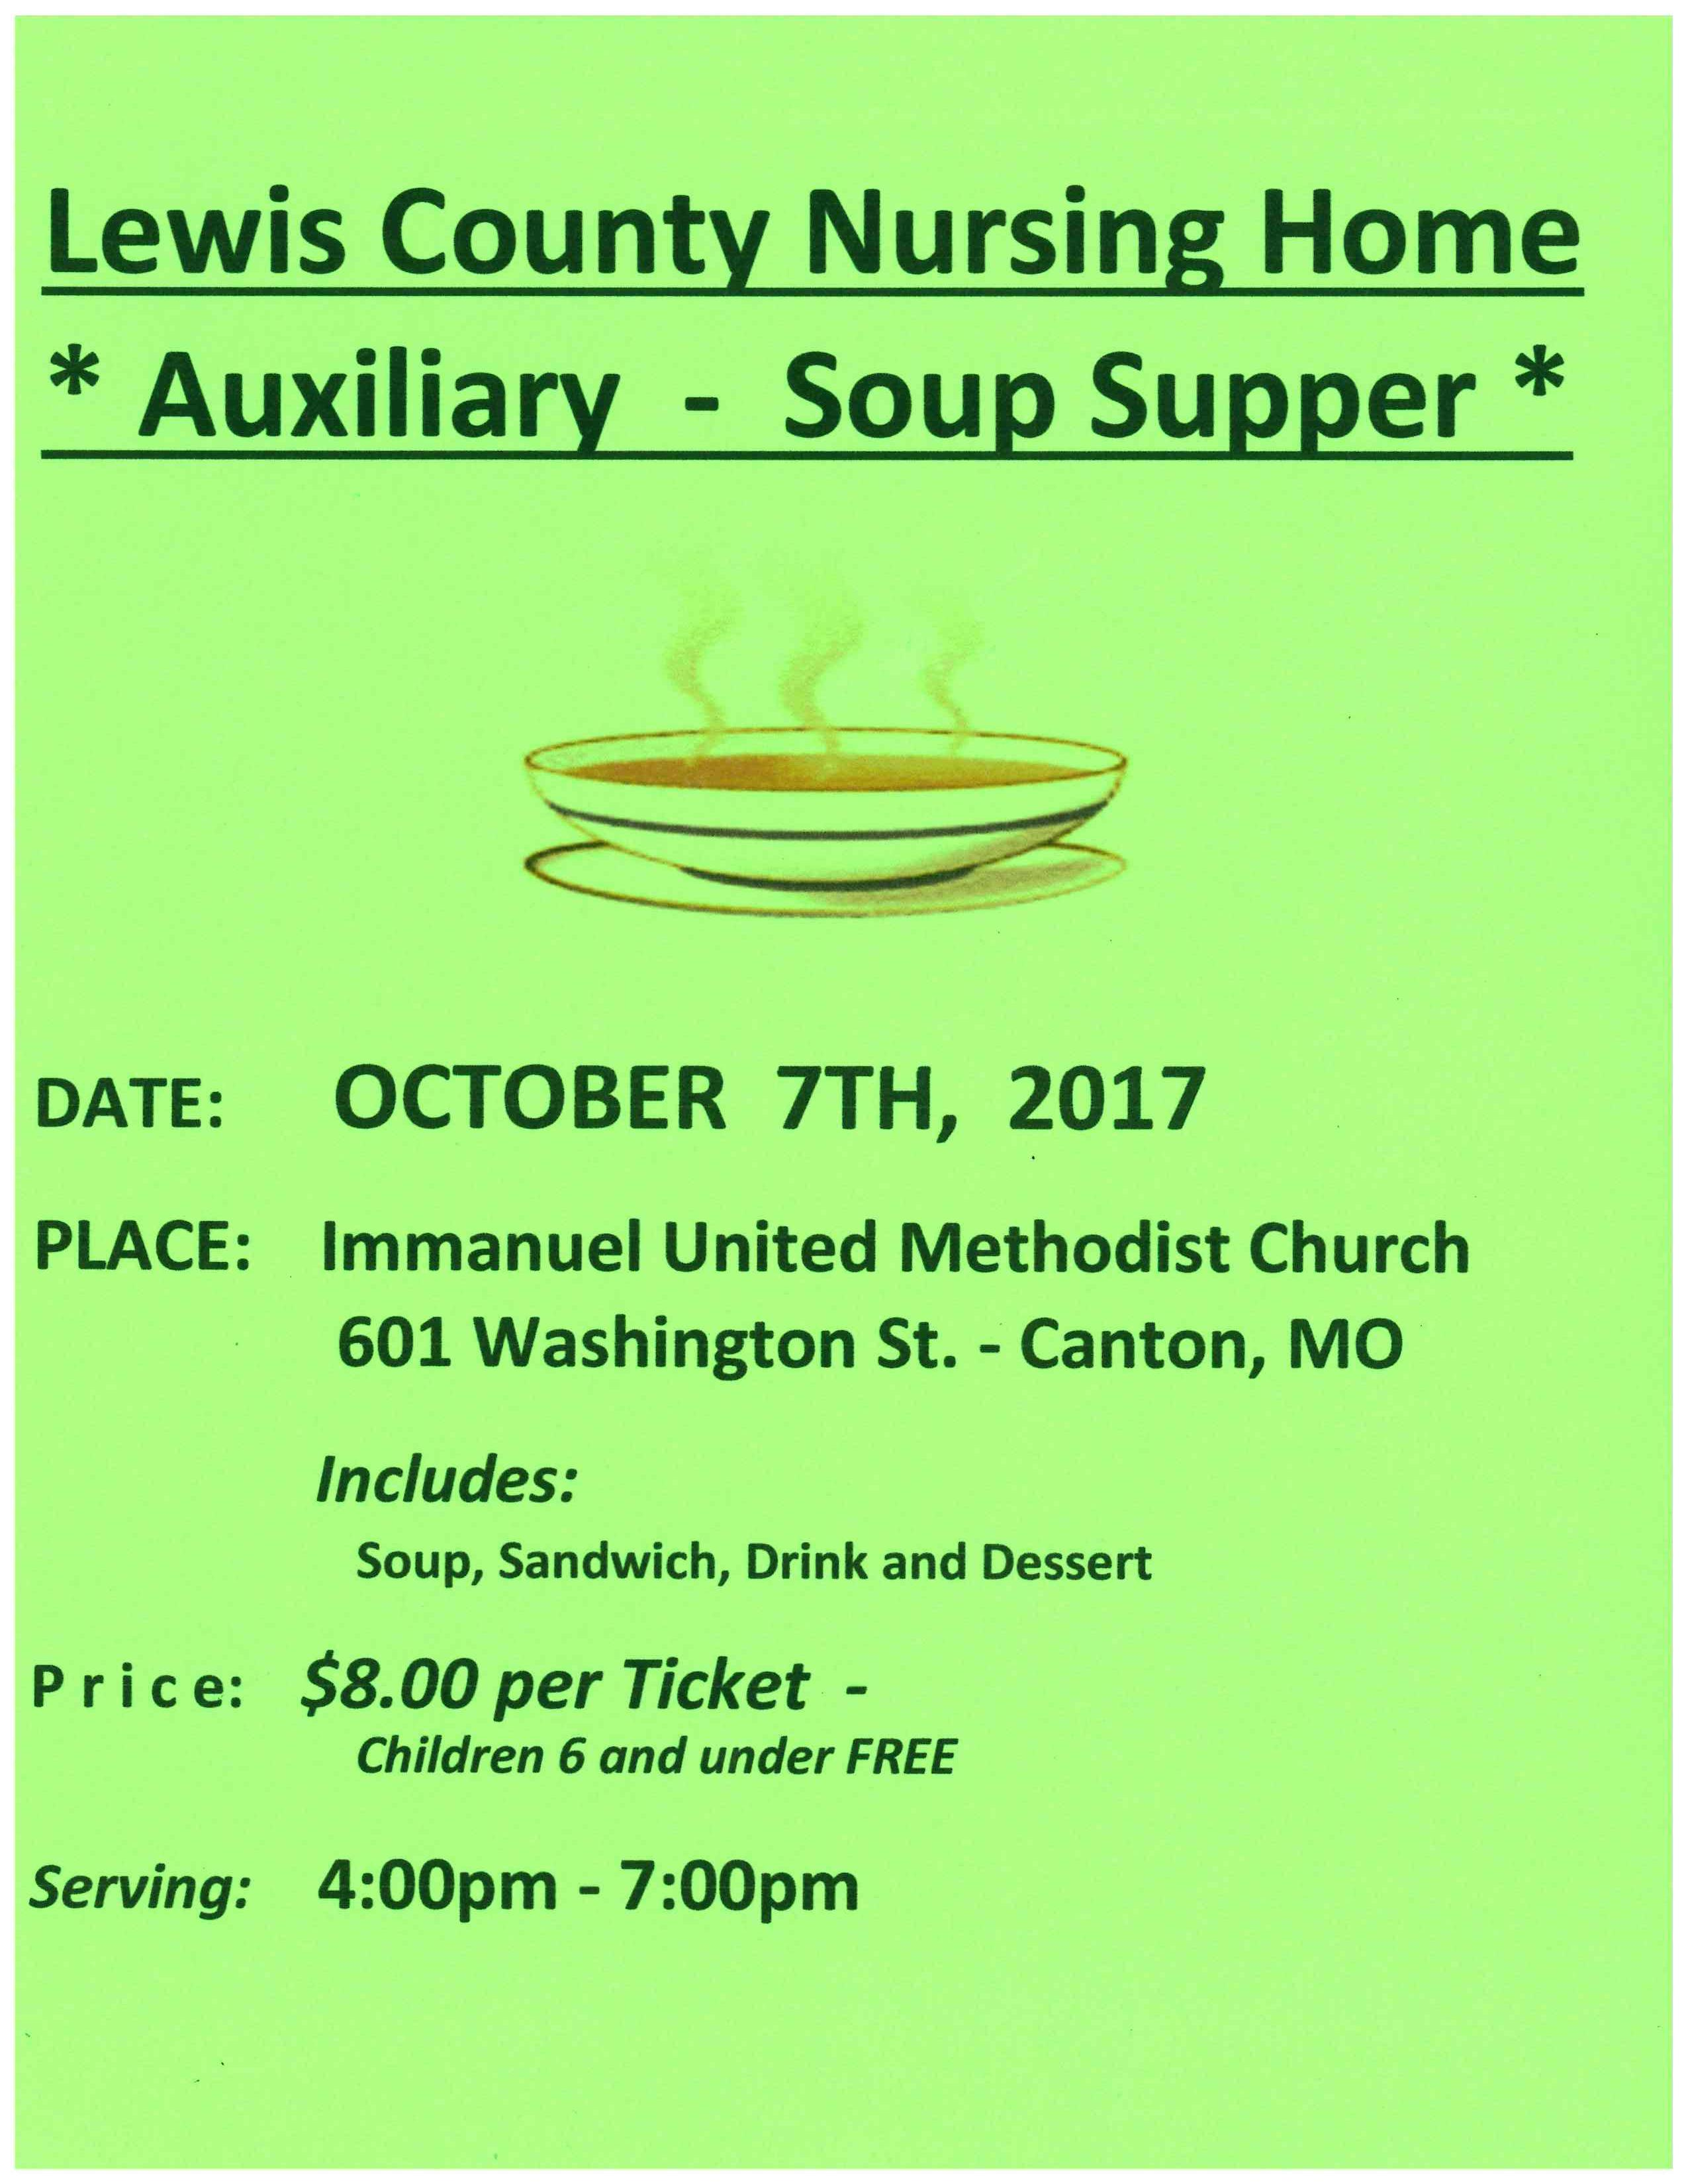 Lewis County Nursing Home Auxiliary Soup Supper @ Immanuel United Methodist Church | Canton | Missouri | United States